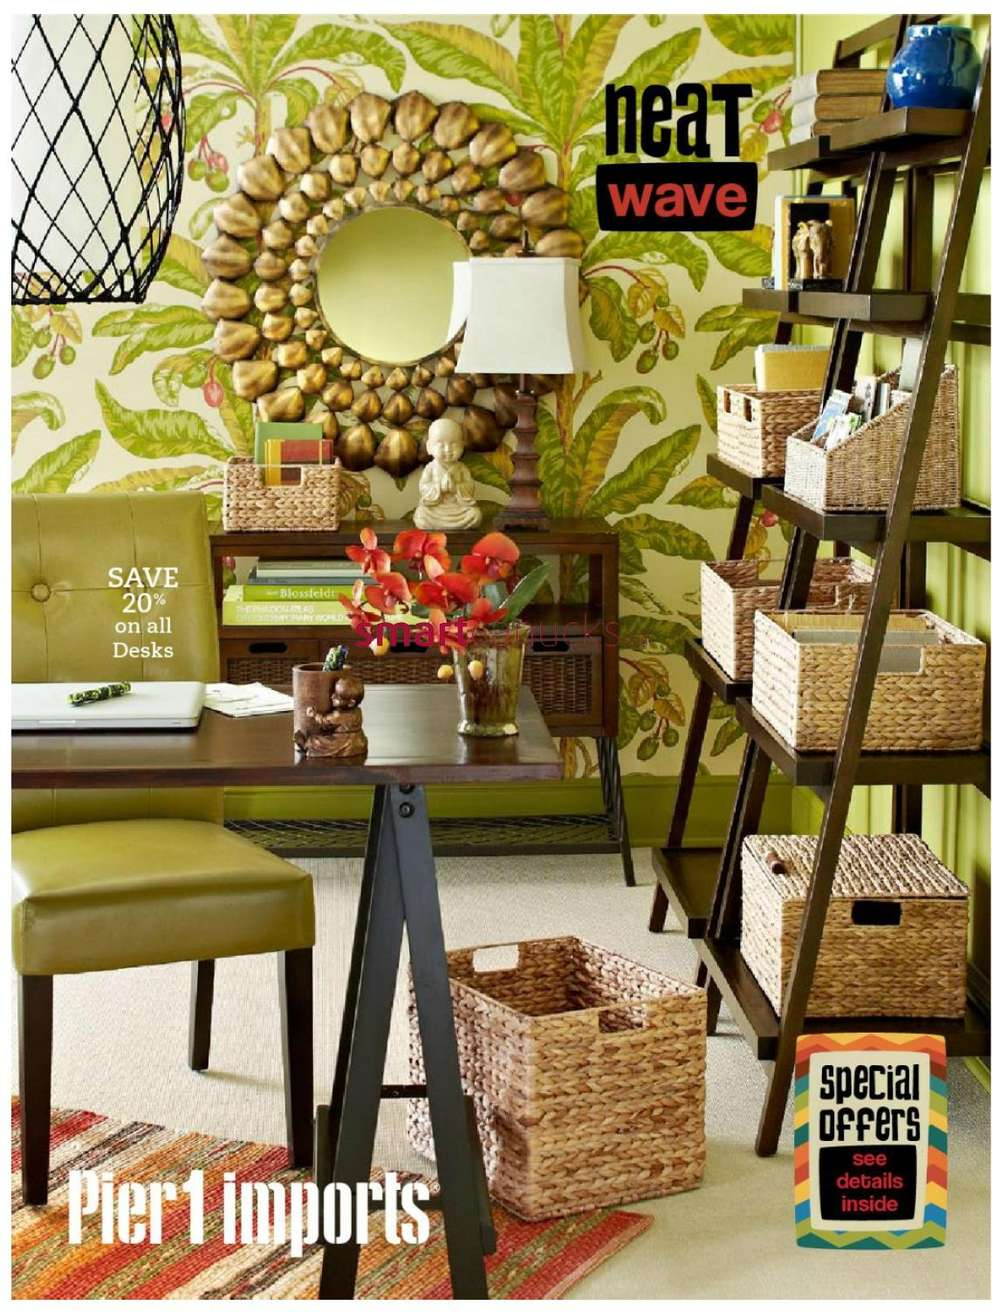 Pier 1 Imports flyer July 8 to August 4. Pier 1 Imports Canada Flyers